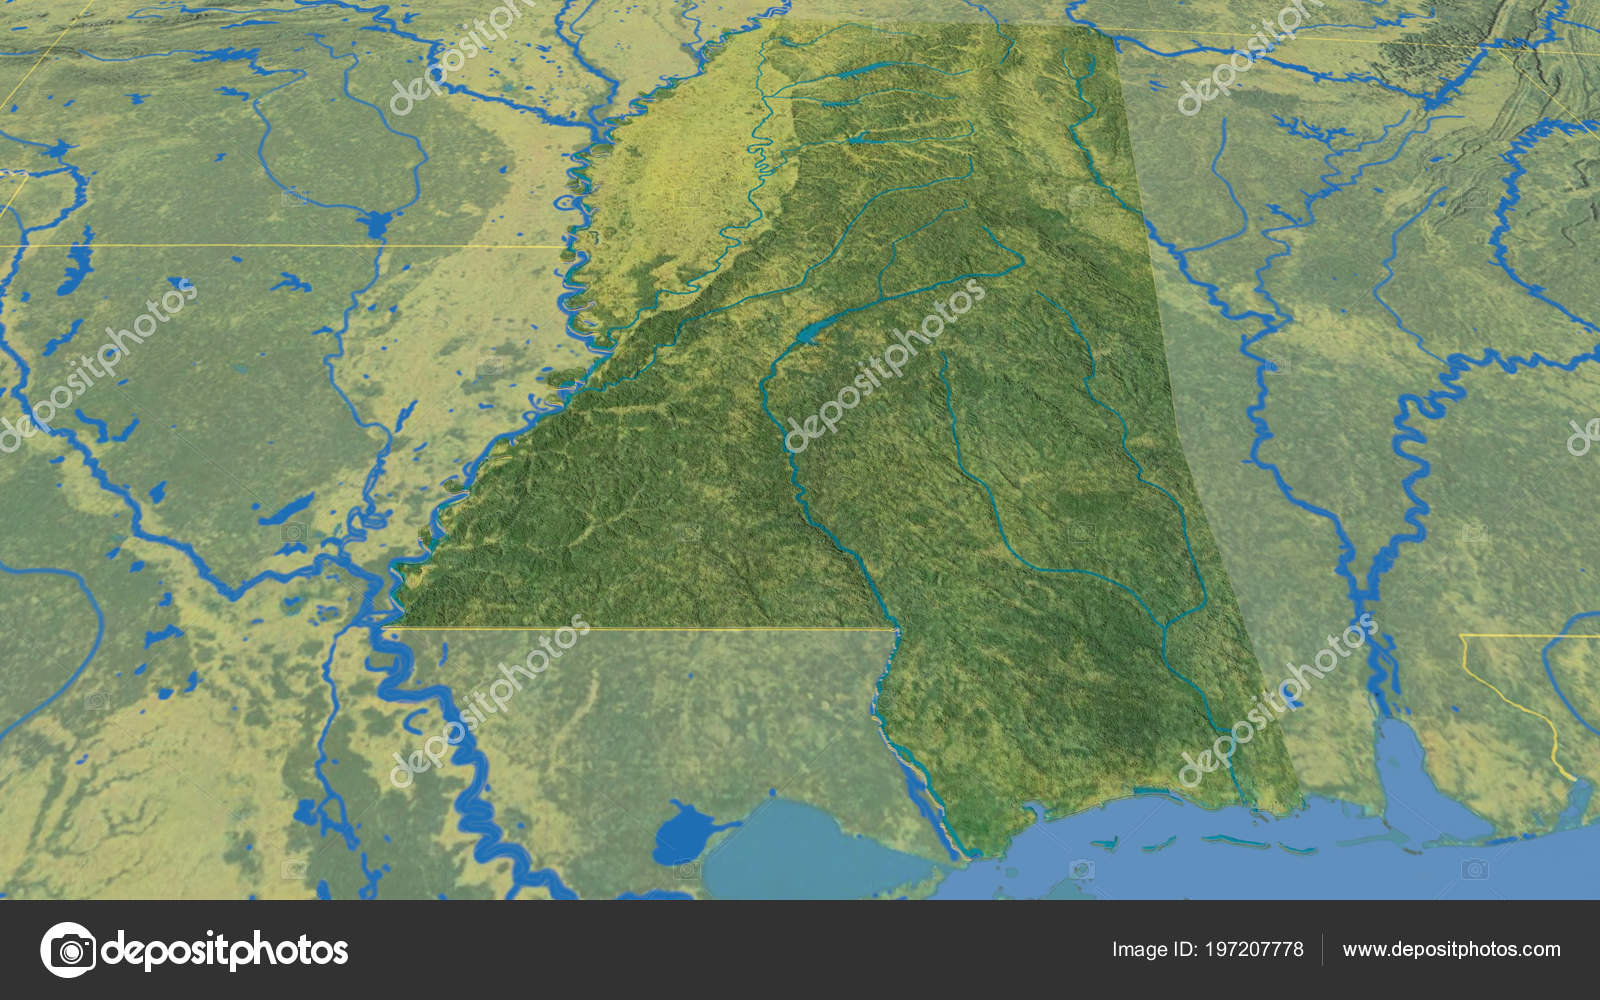 Topographic Map Mississippi.Mississippi Region United States Extruded Topographic Map Stock